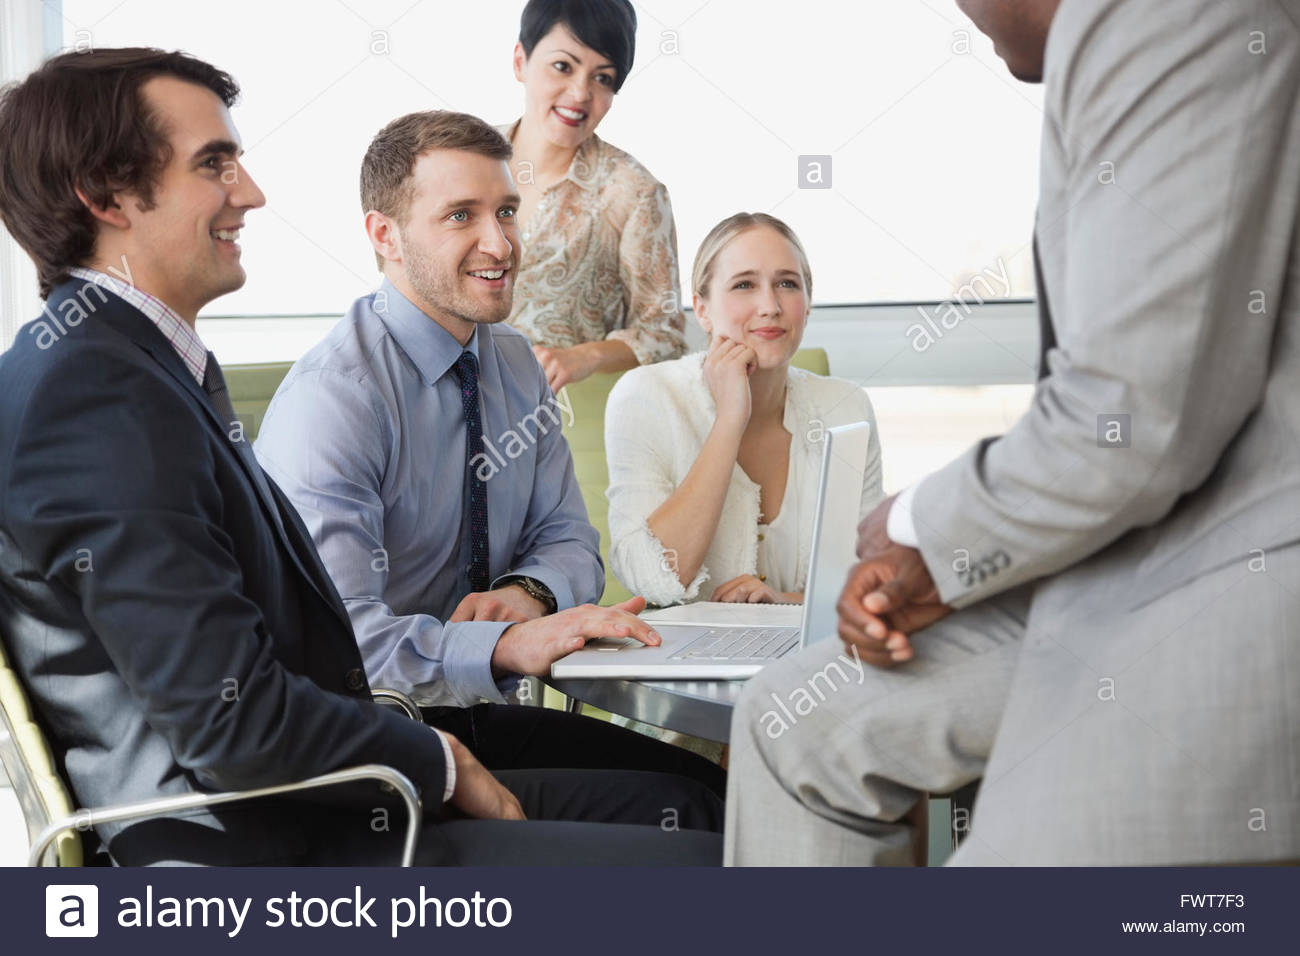 Colleagues looking at leader while sitting in board room - Stock Image